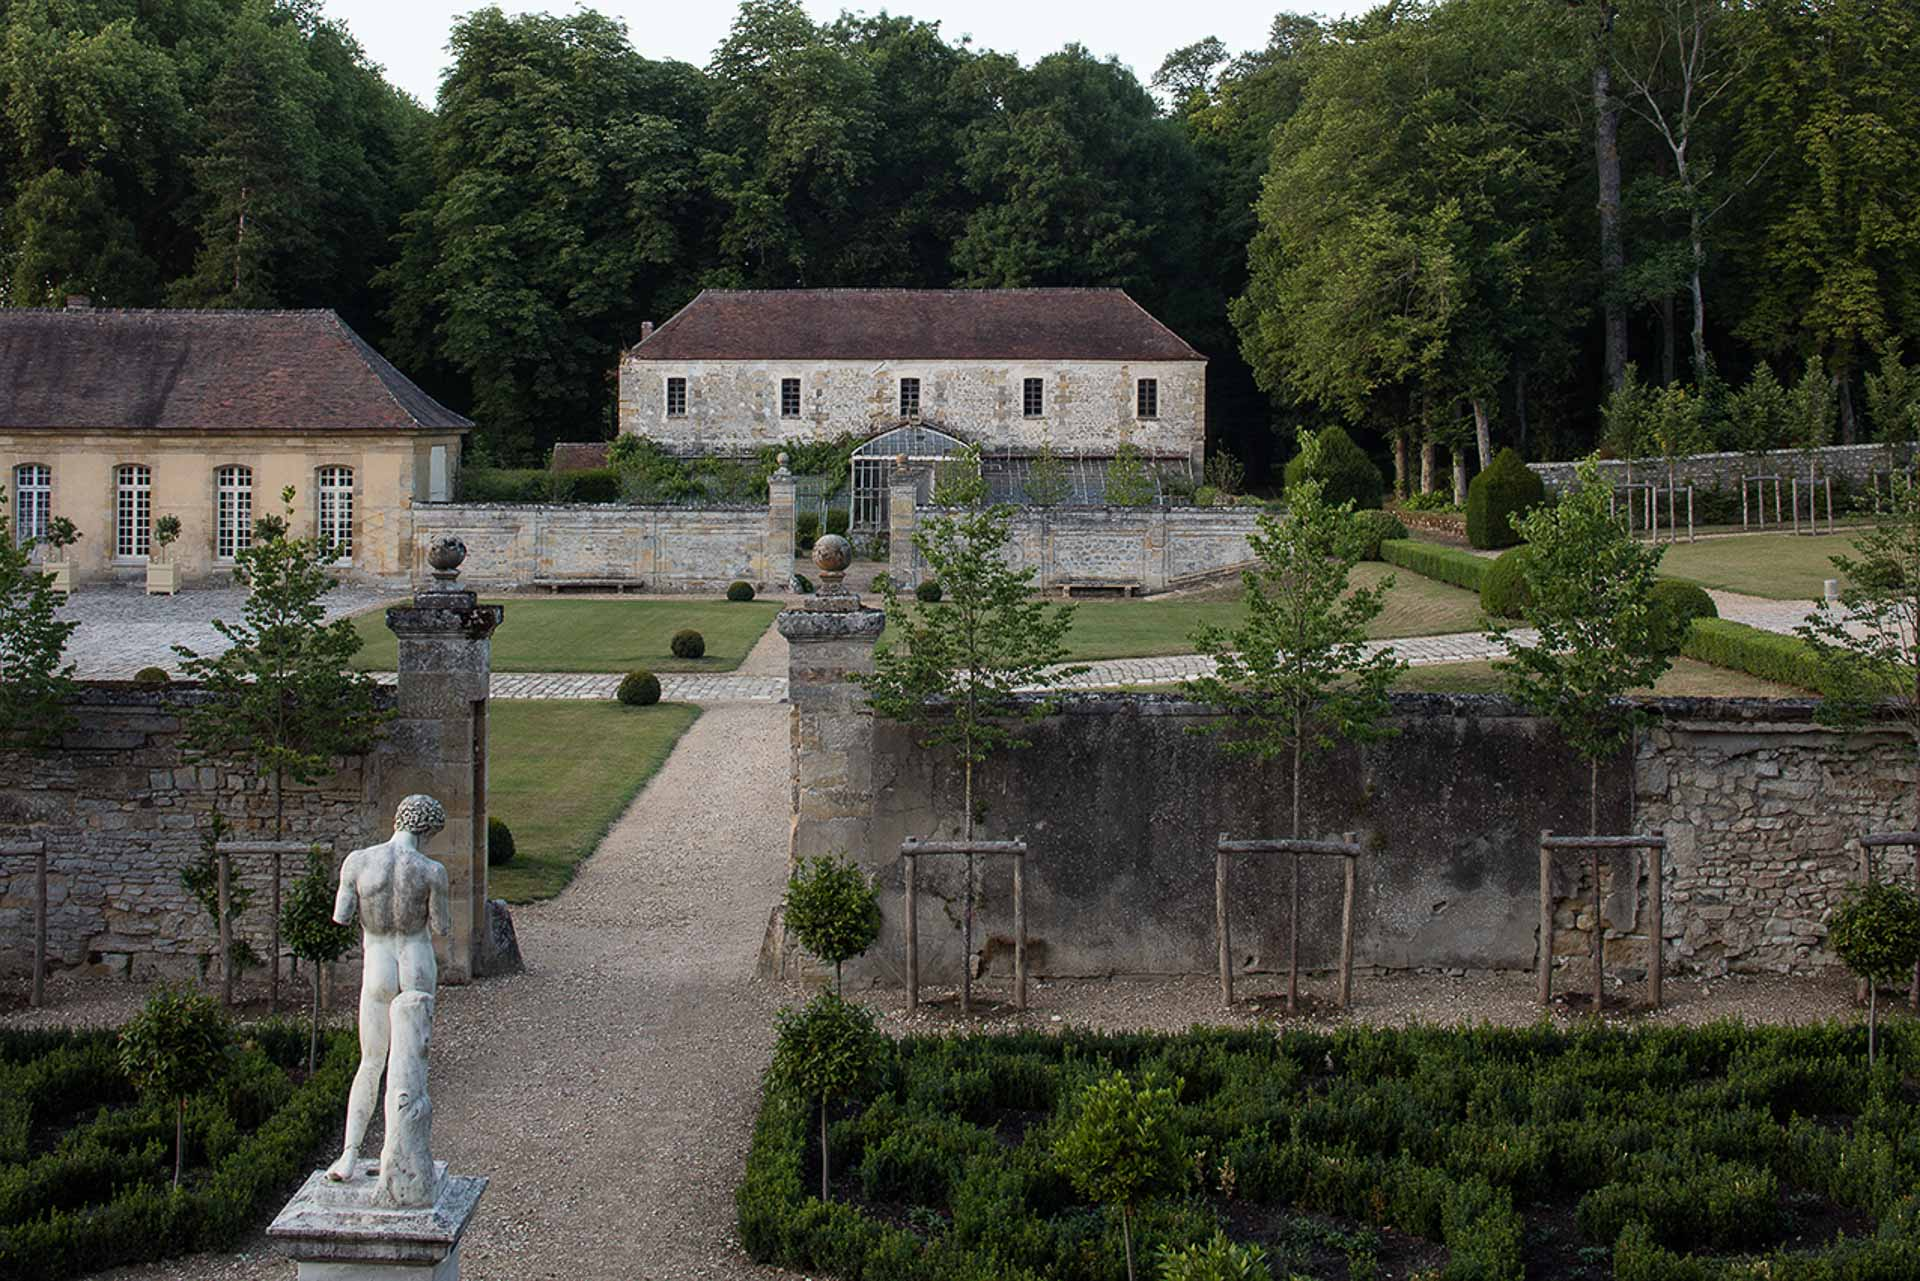 Chateau de Villette exclusive private estate historical venue for wedding seminar private dinner luxury service collection of antiques tapestries with modern comfort 12